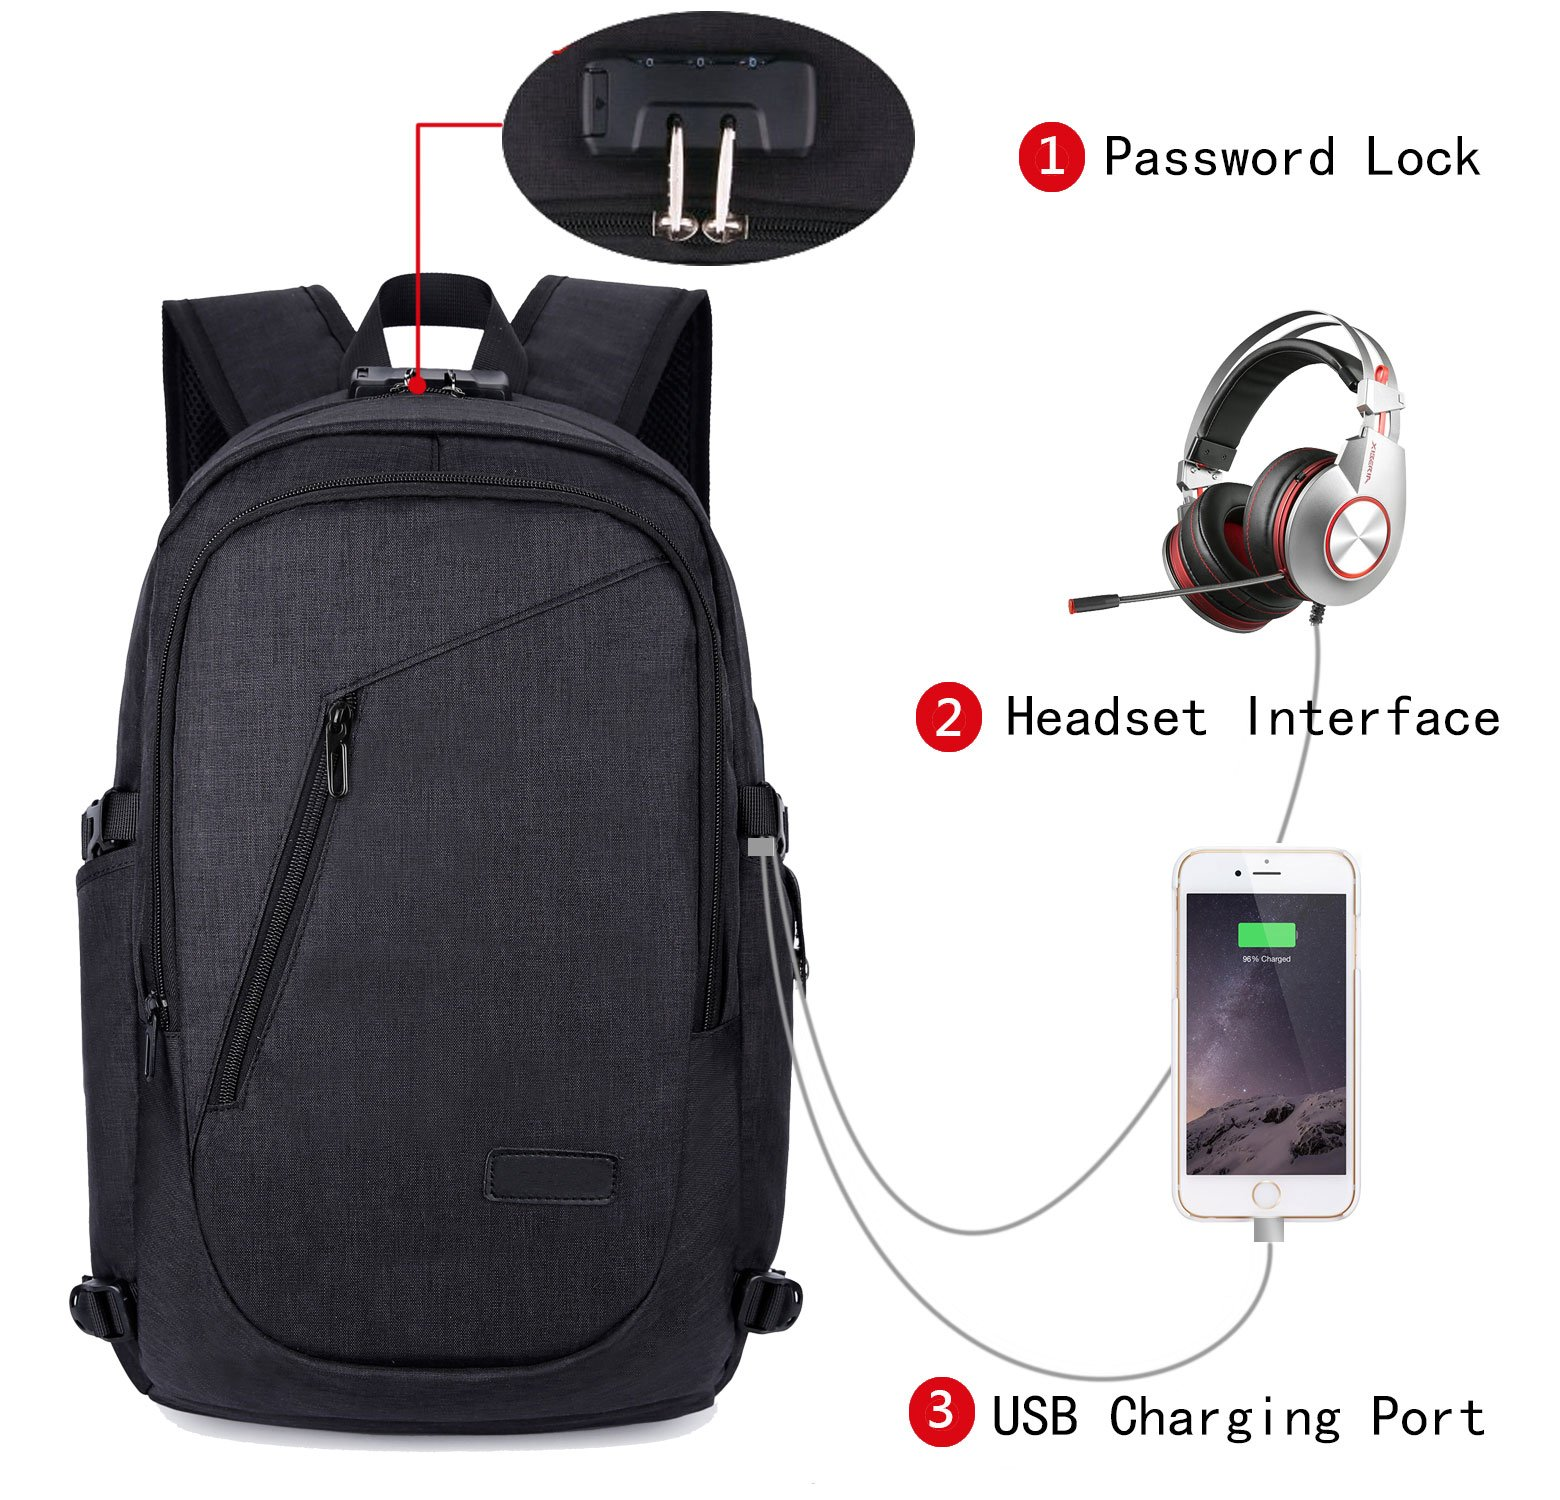 Business Laptop Backpack, FLYMEI Anti Theft Water Resistant Bookbag with USB Charging Port and Headphone Interface, Slim Travel College School Bookbag, Computer Bag Fits under 15.6'' Laptop, Black by FLYMEI